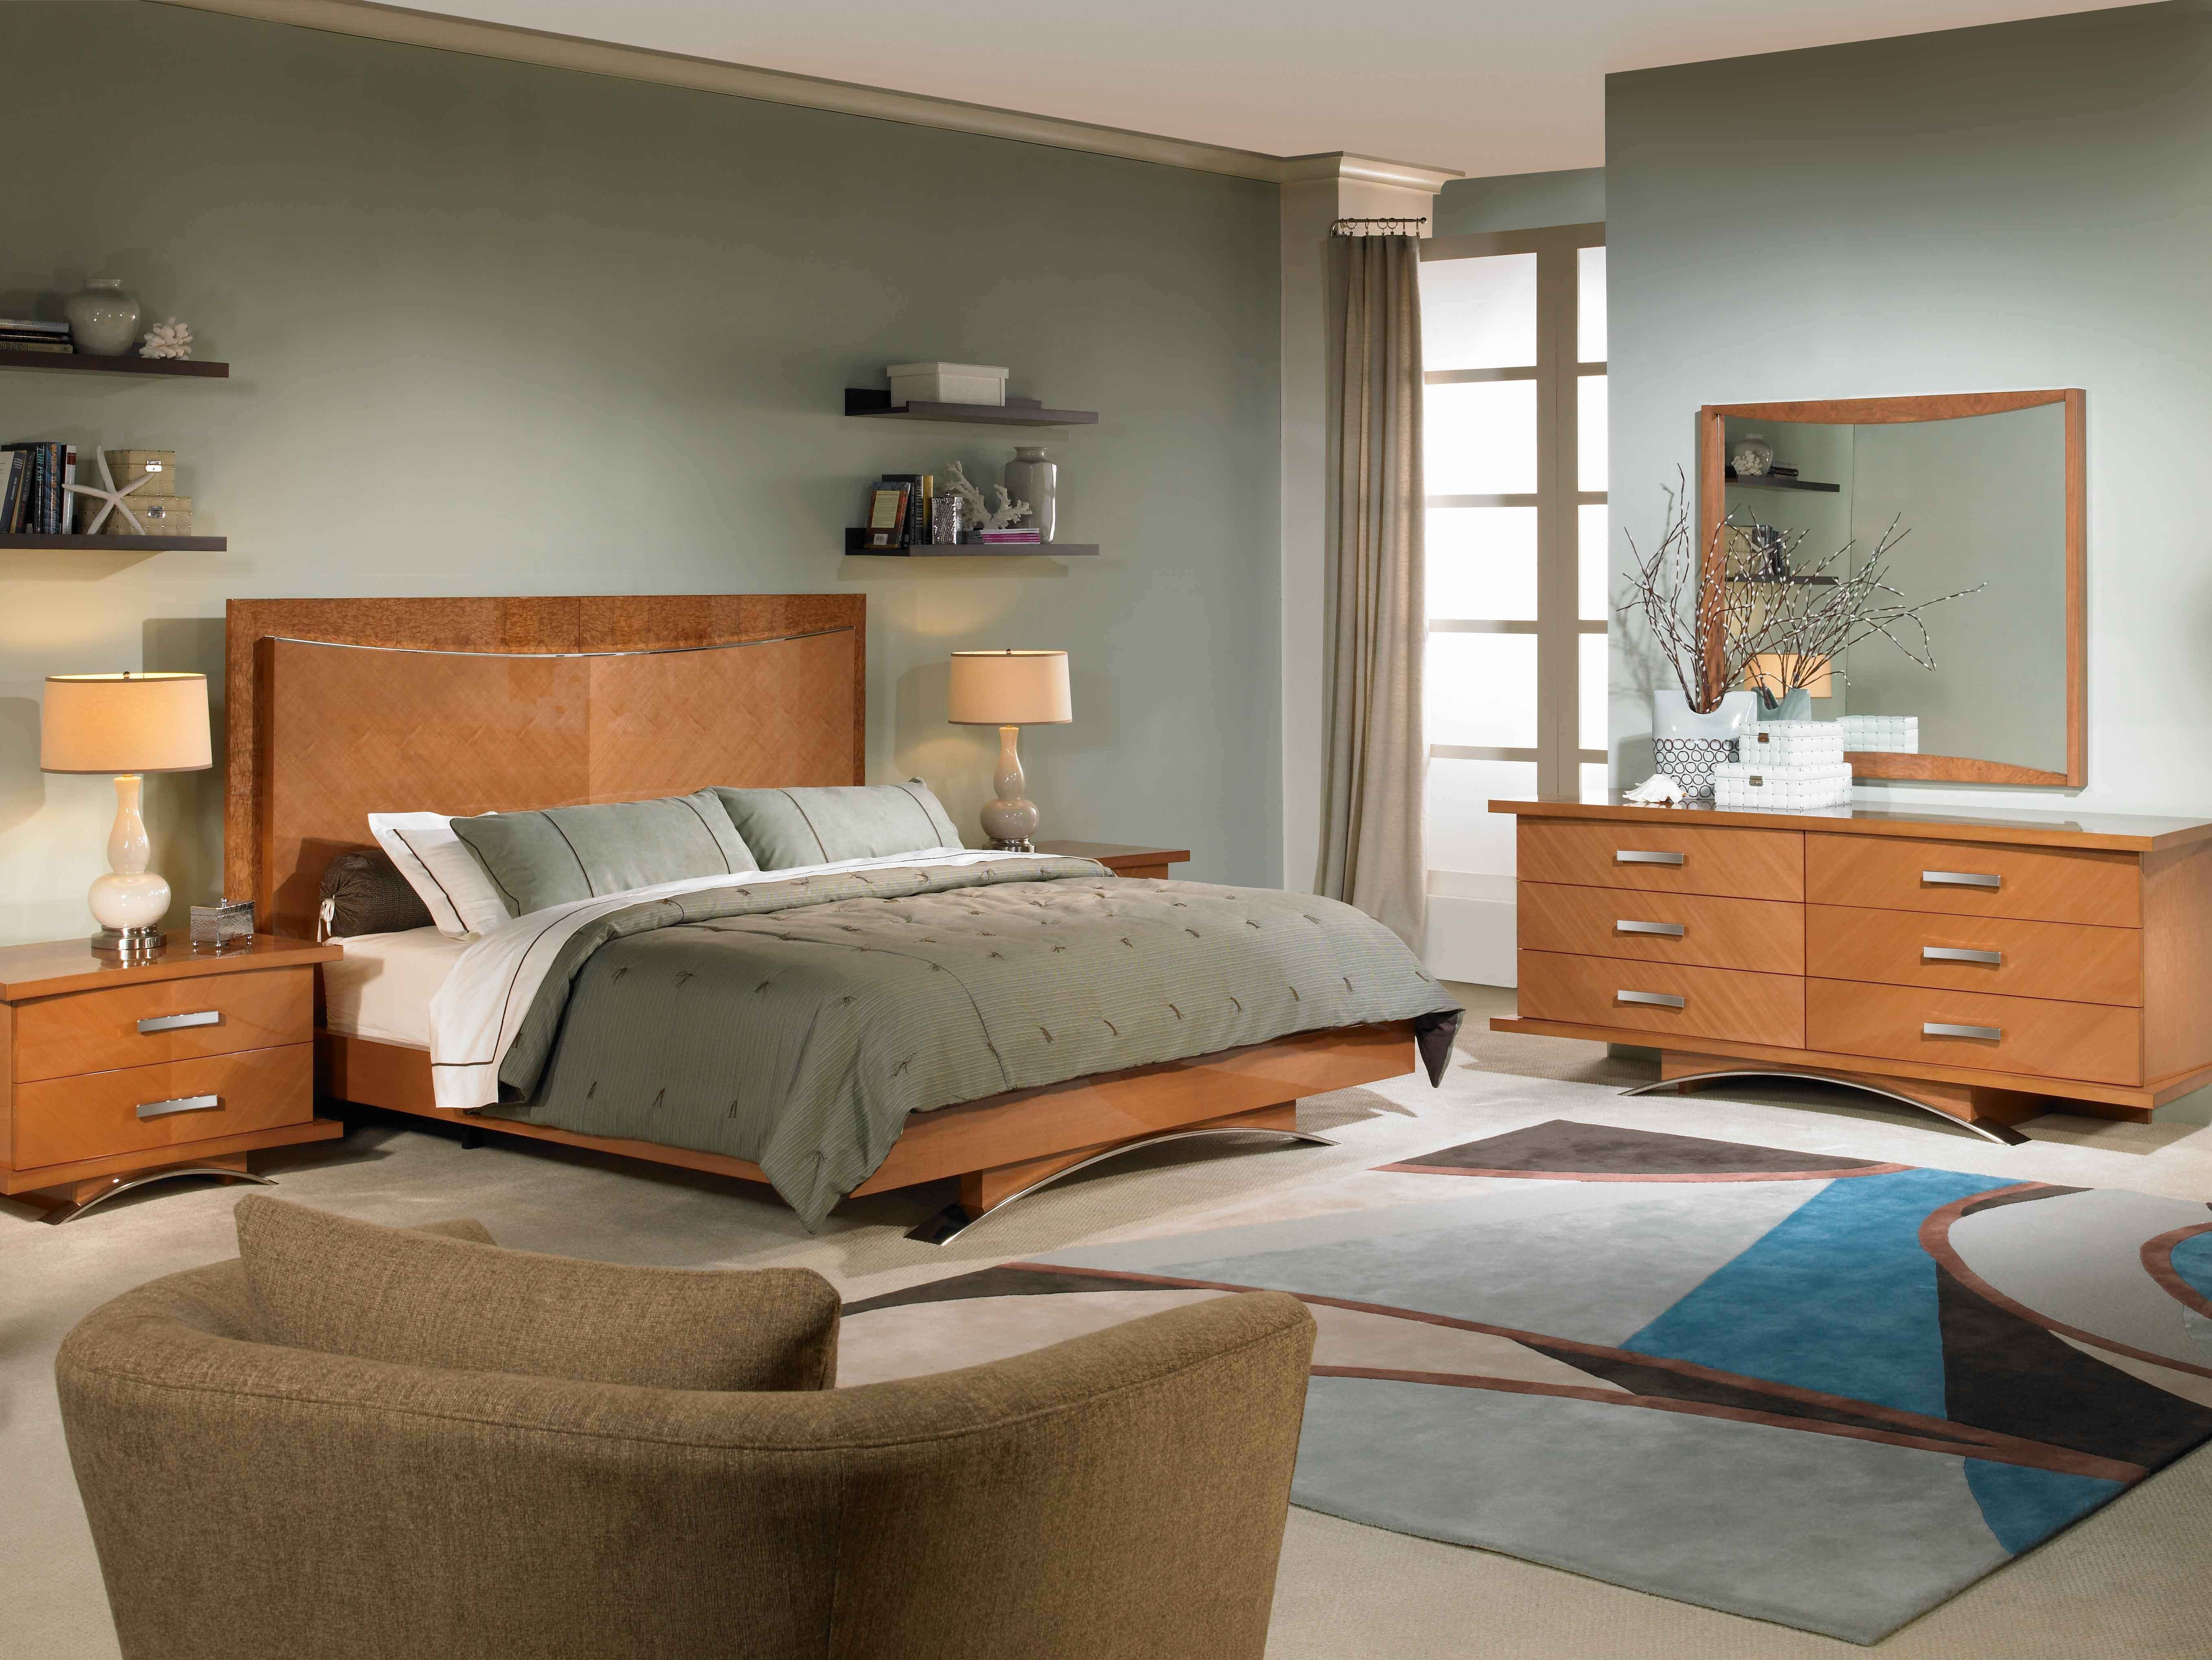 Italy 2000 Has A Generous Selection Of Contemporary Italian Modern Furniture  Store Providing In LA, South Bay, Sherman Oaks Areas.